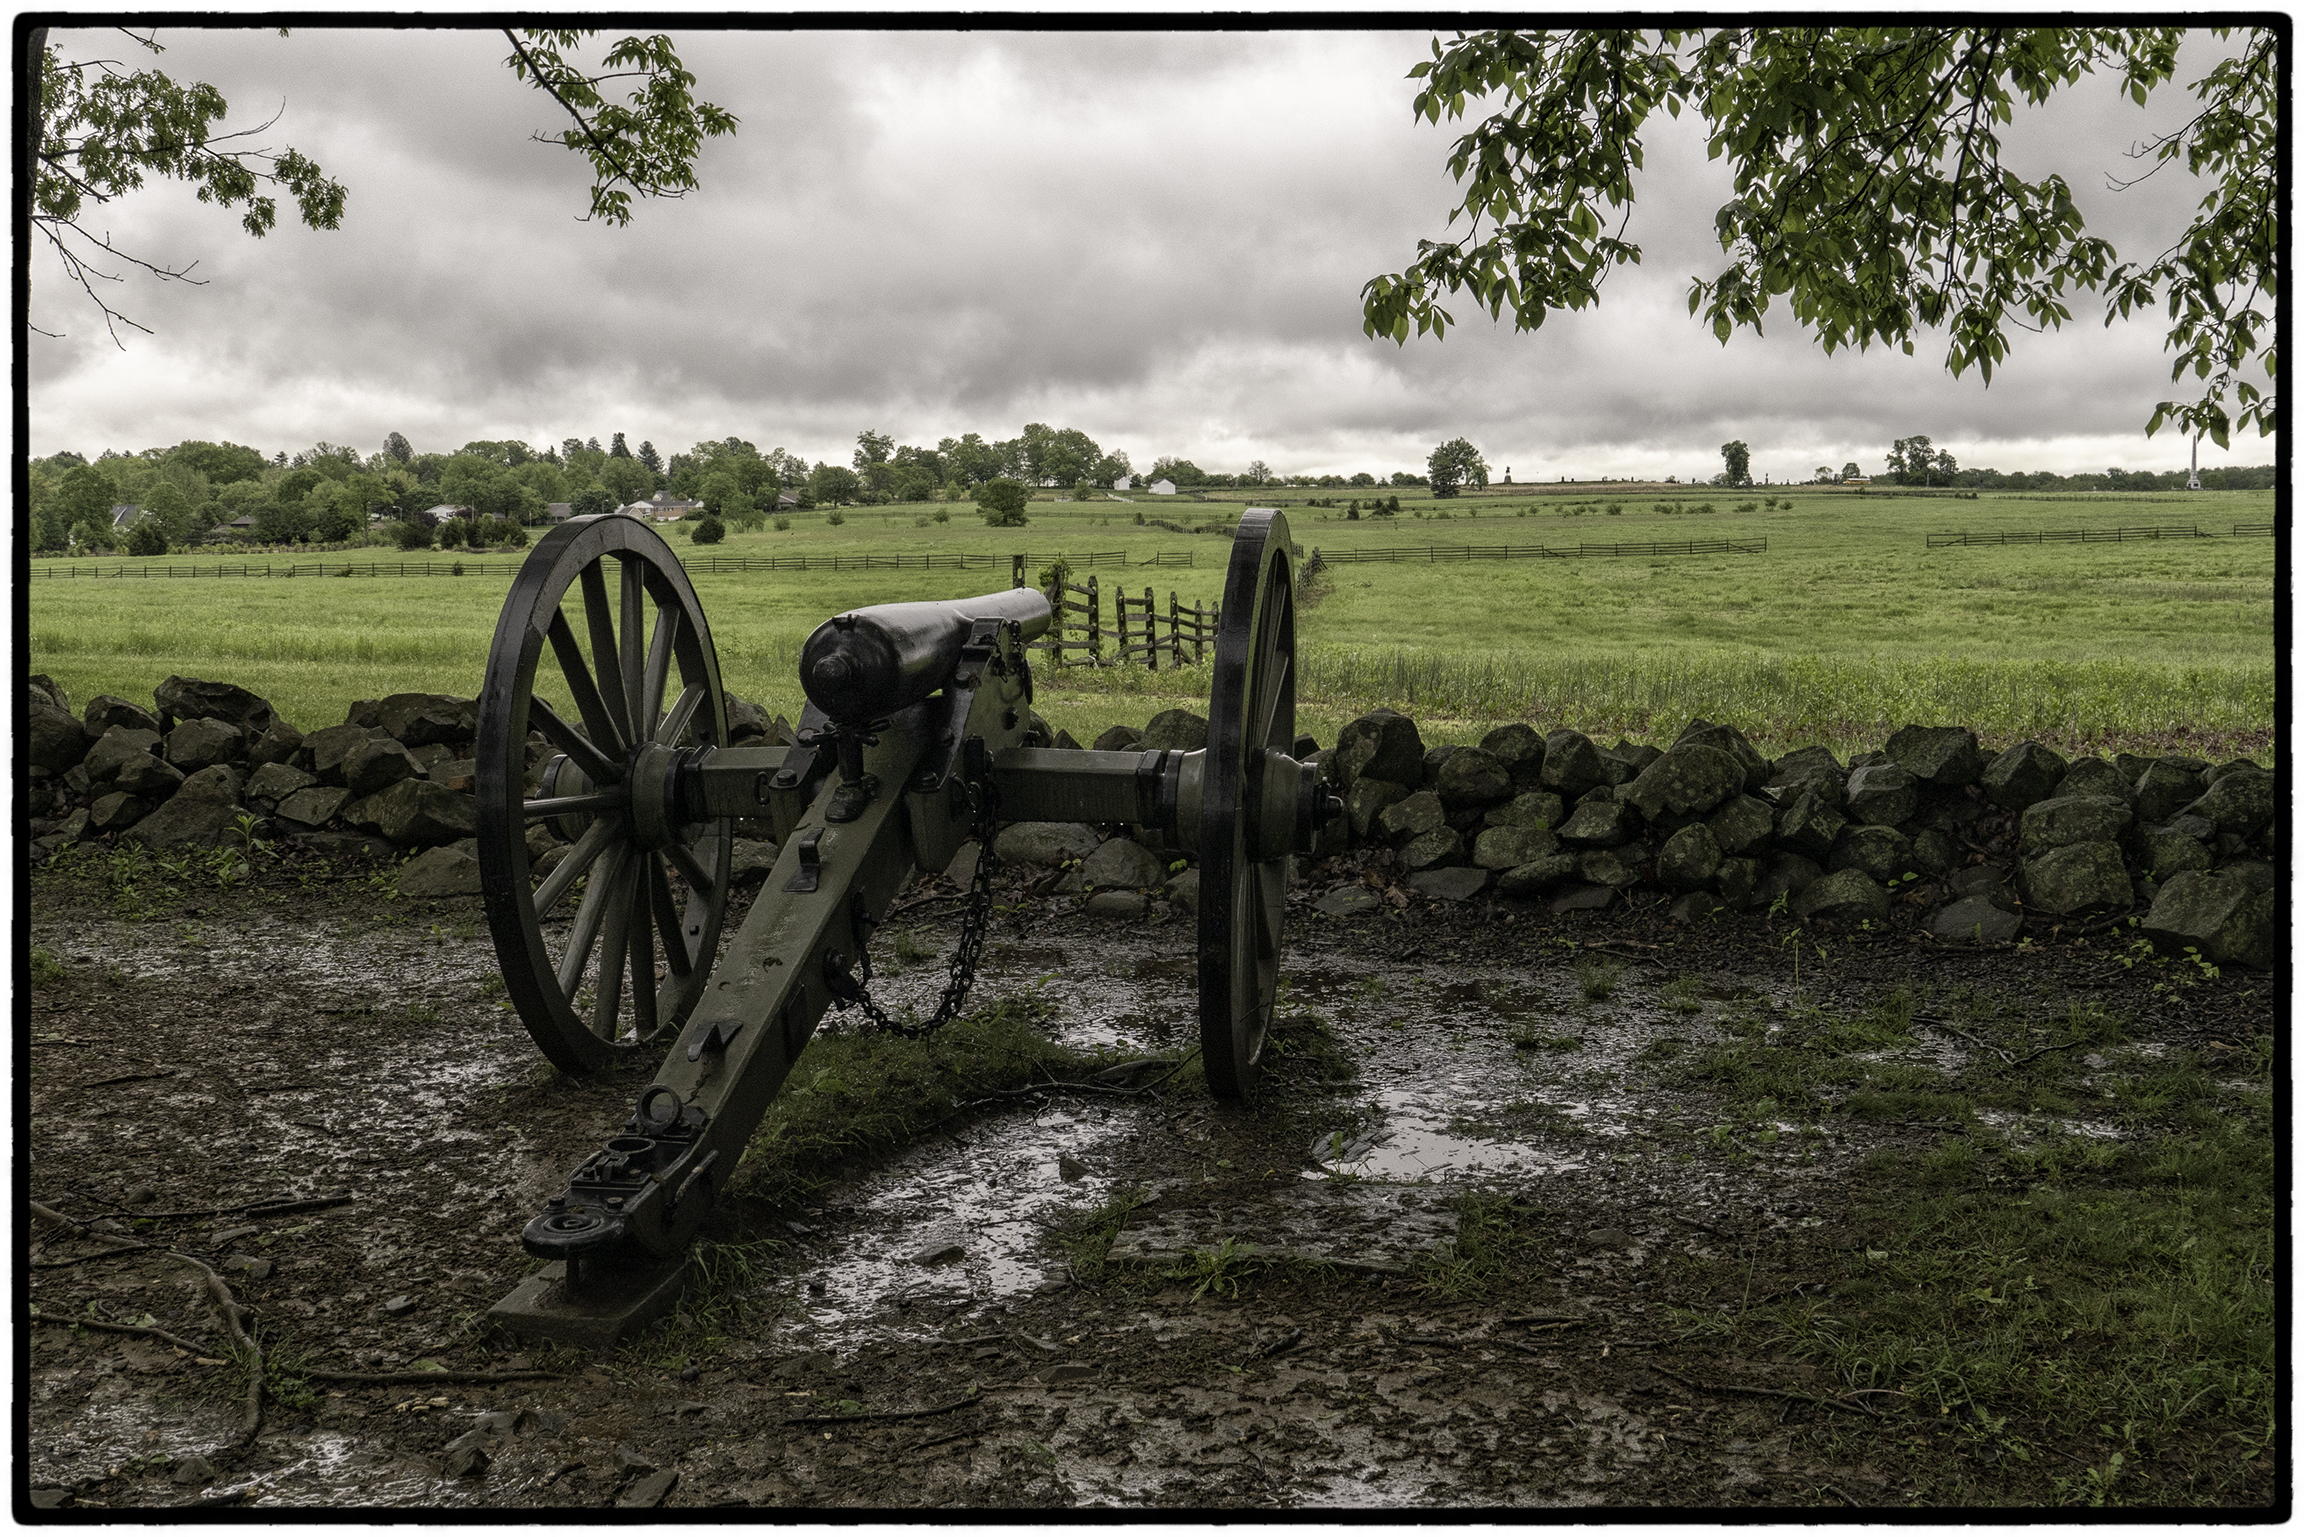 Site of Pickett's Charge, Gettysburg 2